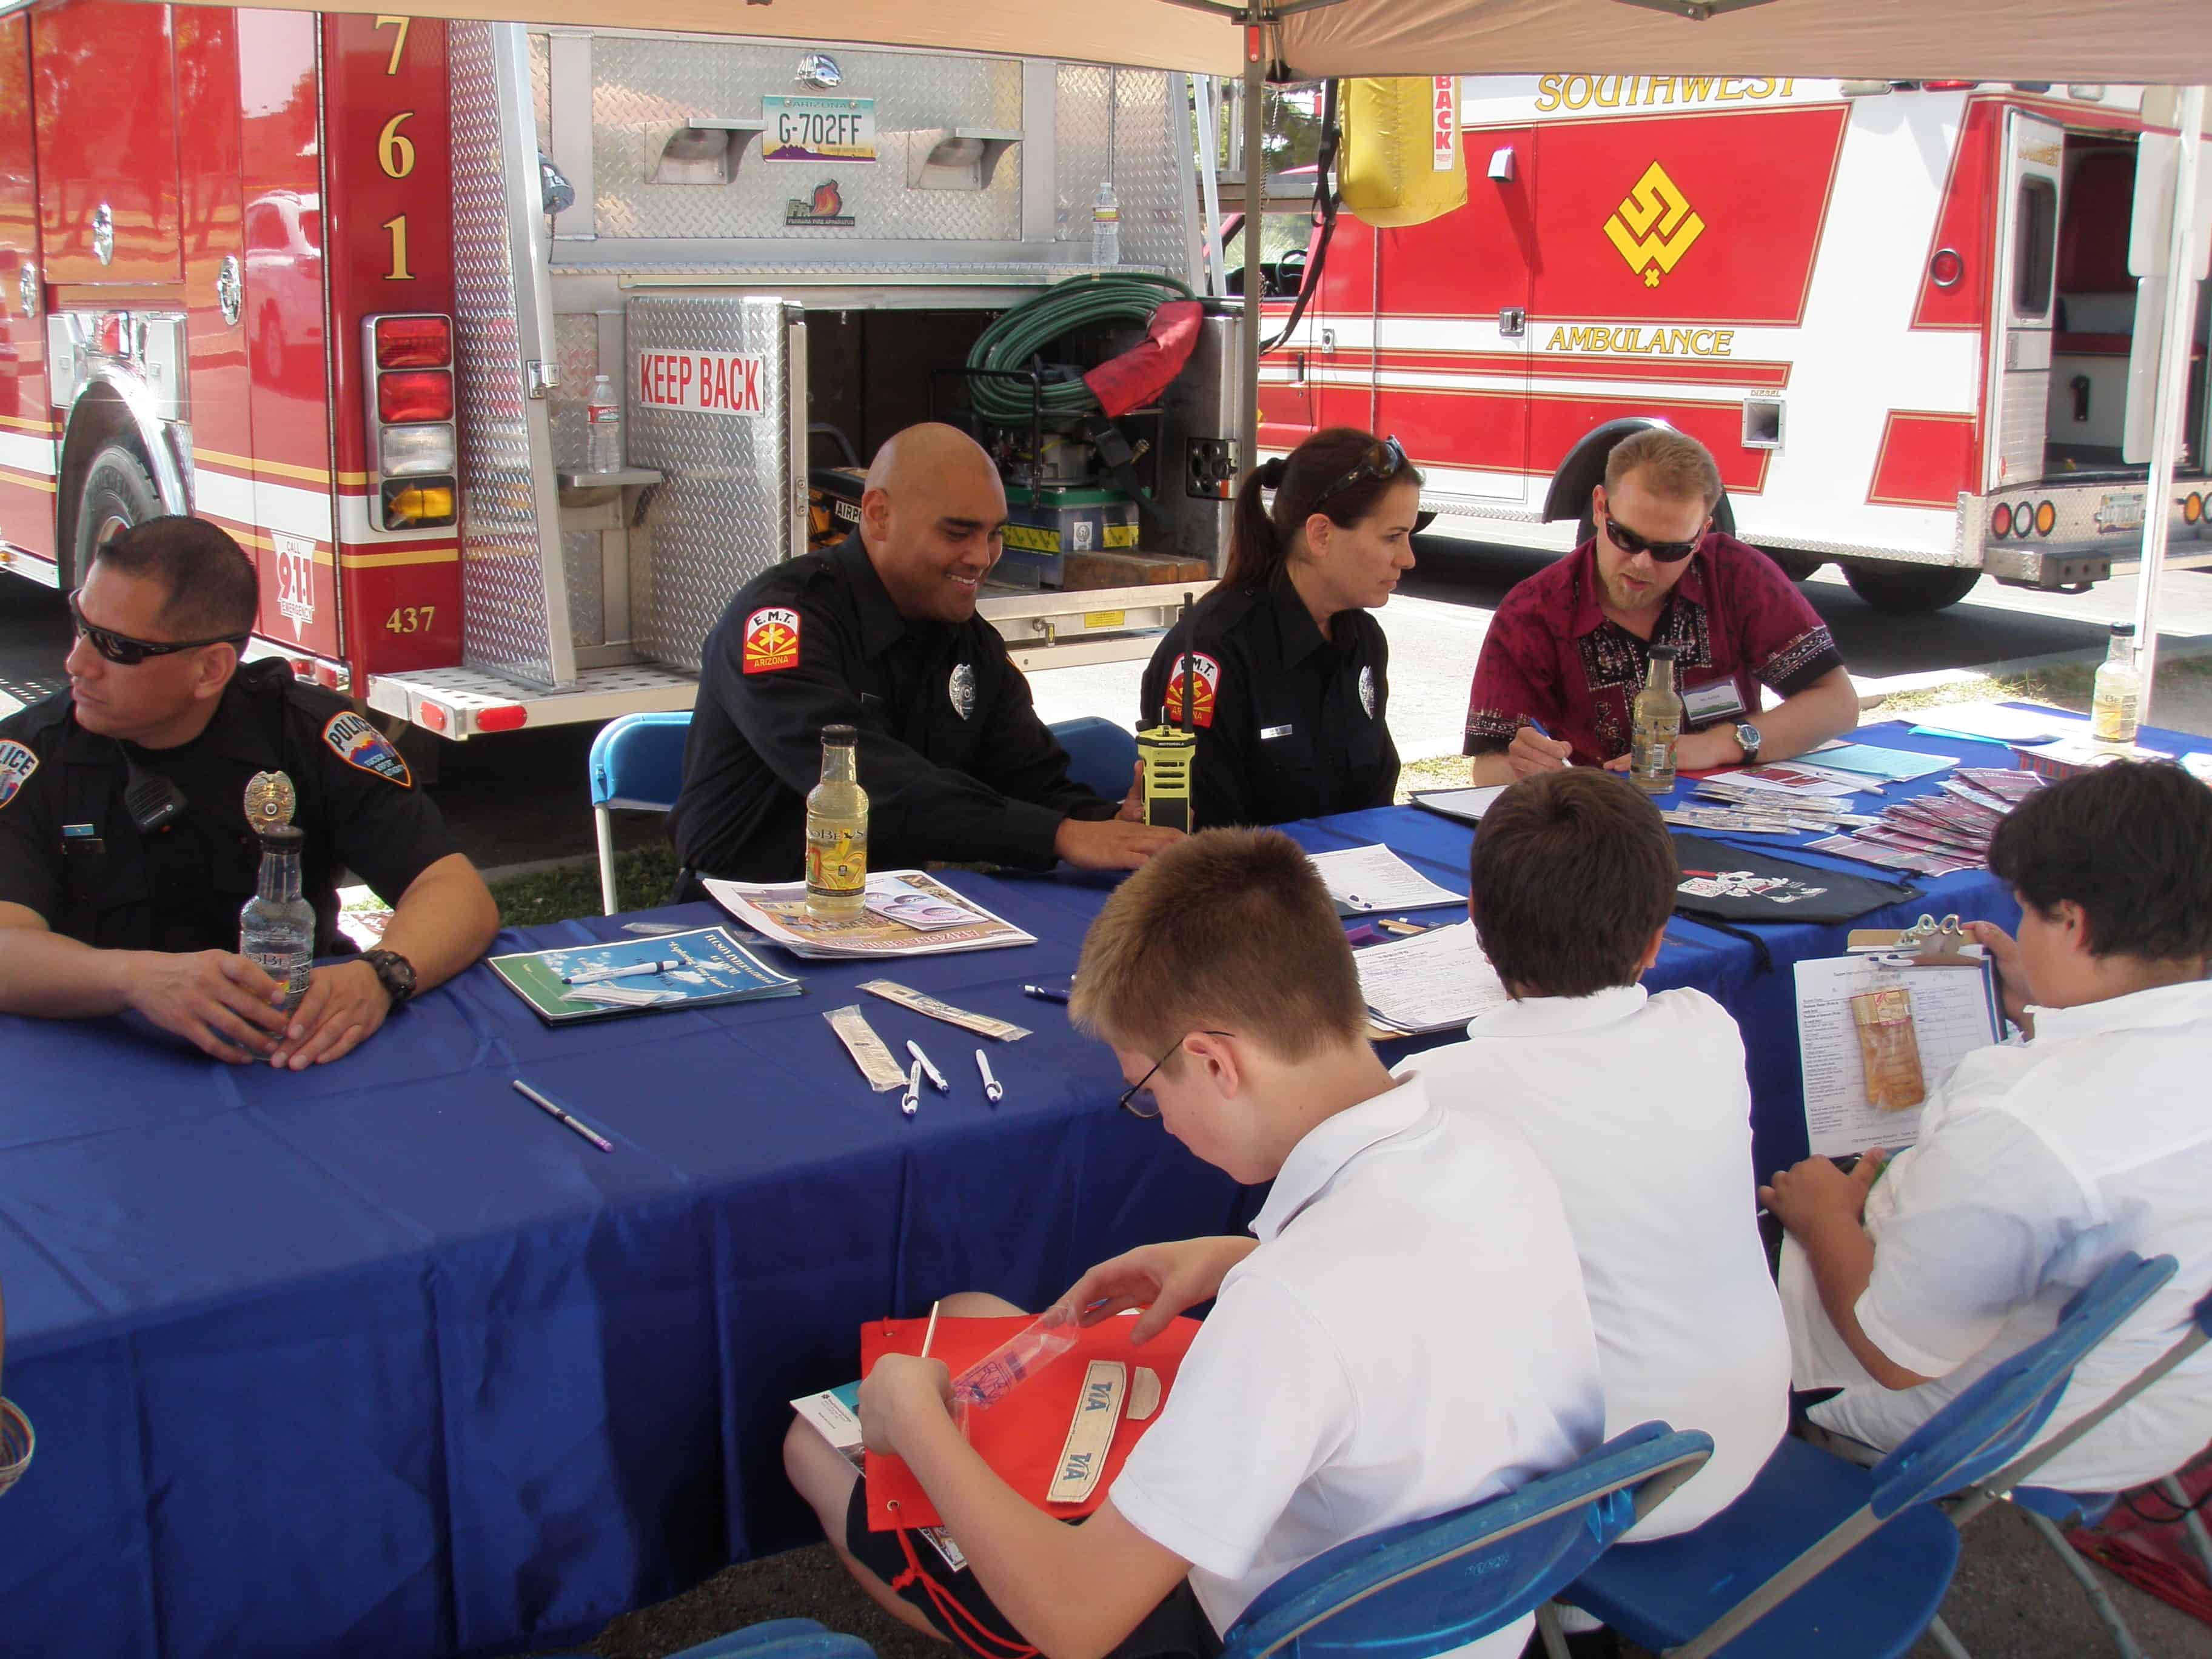 Tucson Fire Dept booth Career Days 2012